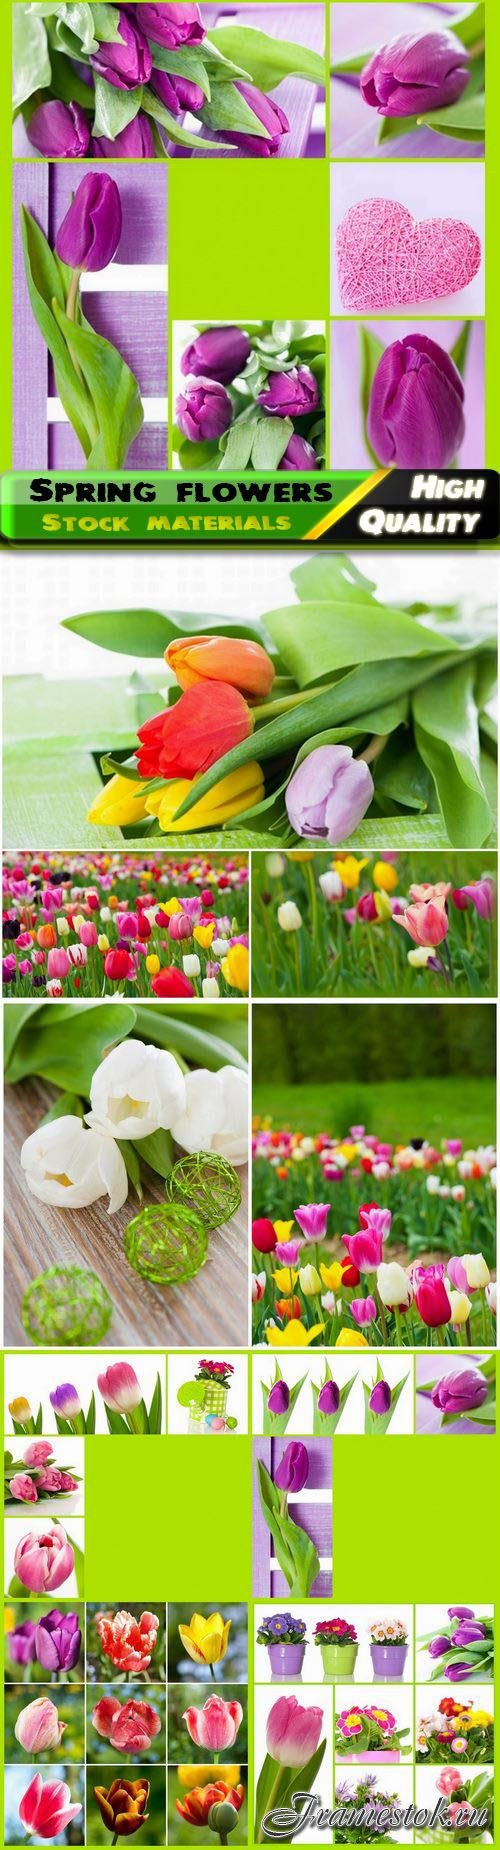 Сollage and fields with spring flowers and tulips 10 HQ Jpg